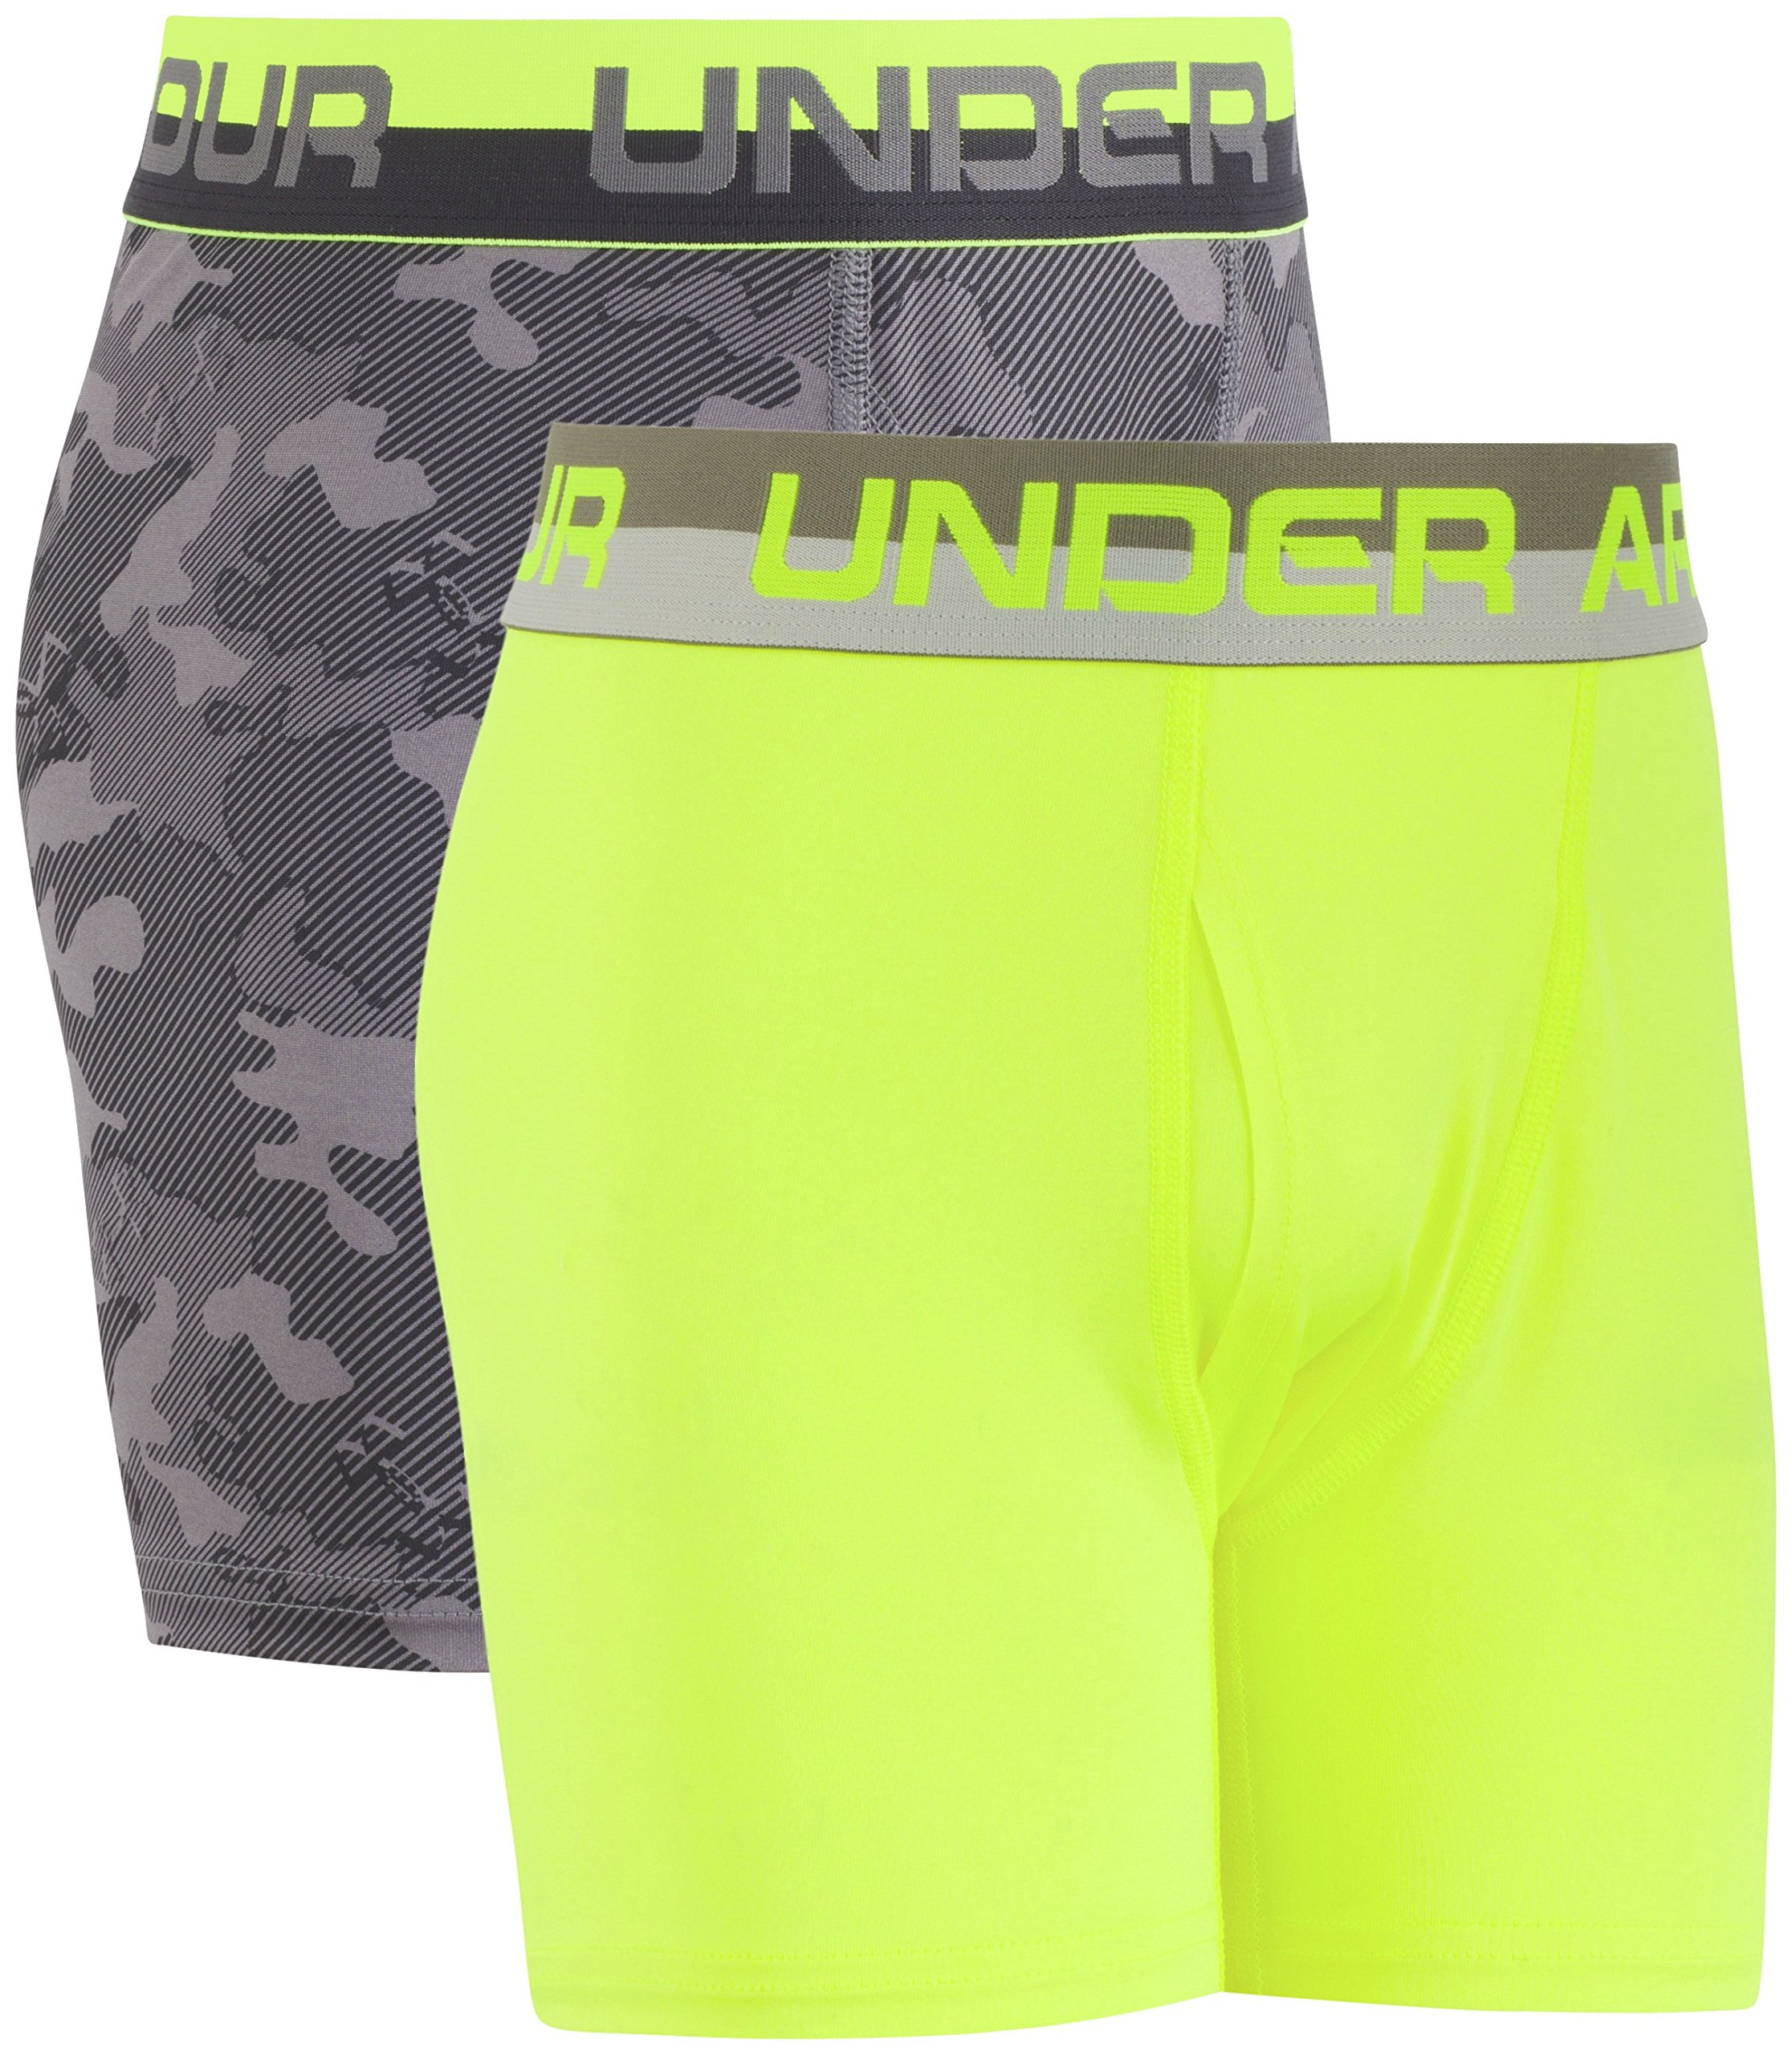 Under Armour Big Boys' 2 Pack Performance Boxer Briefs, Graphite/Yellow, YMD